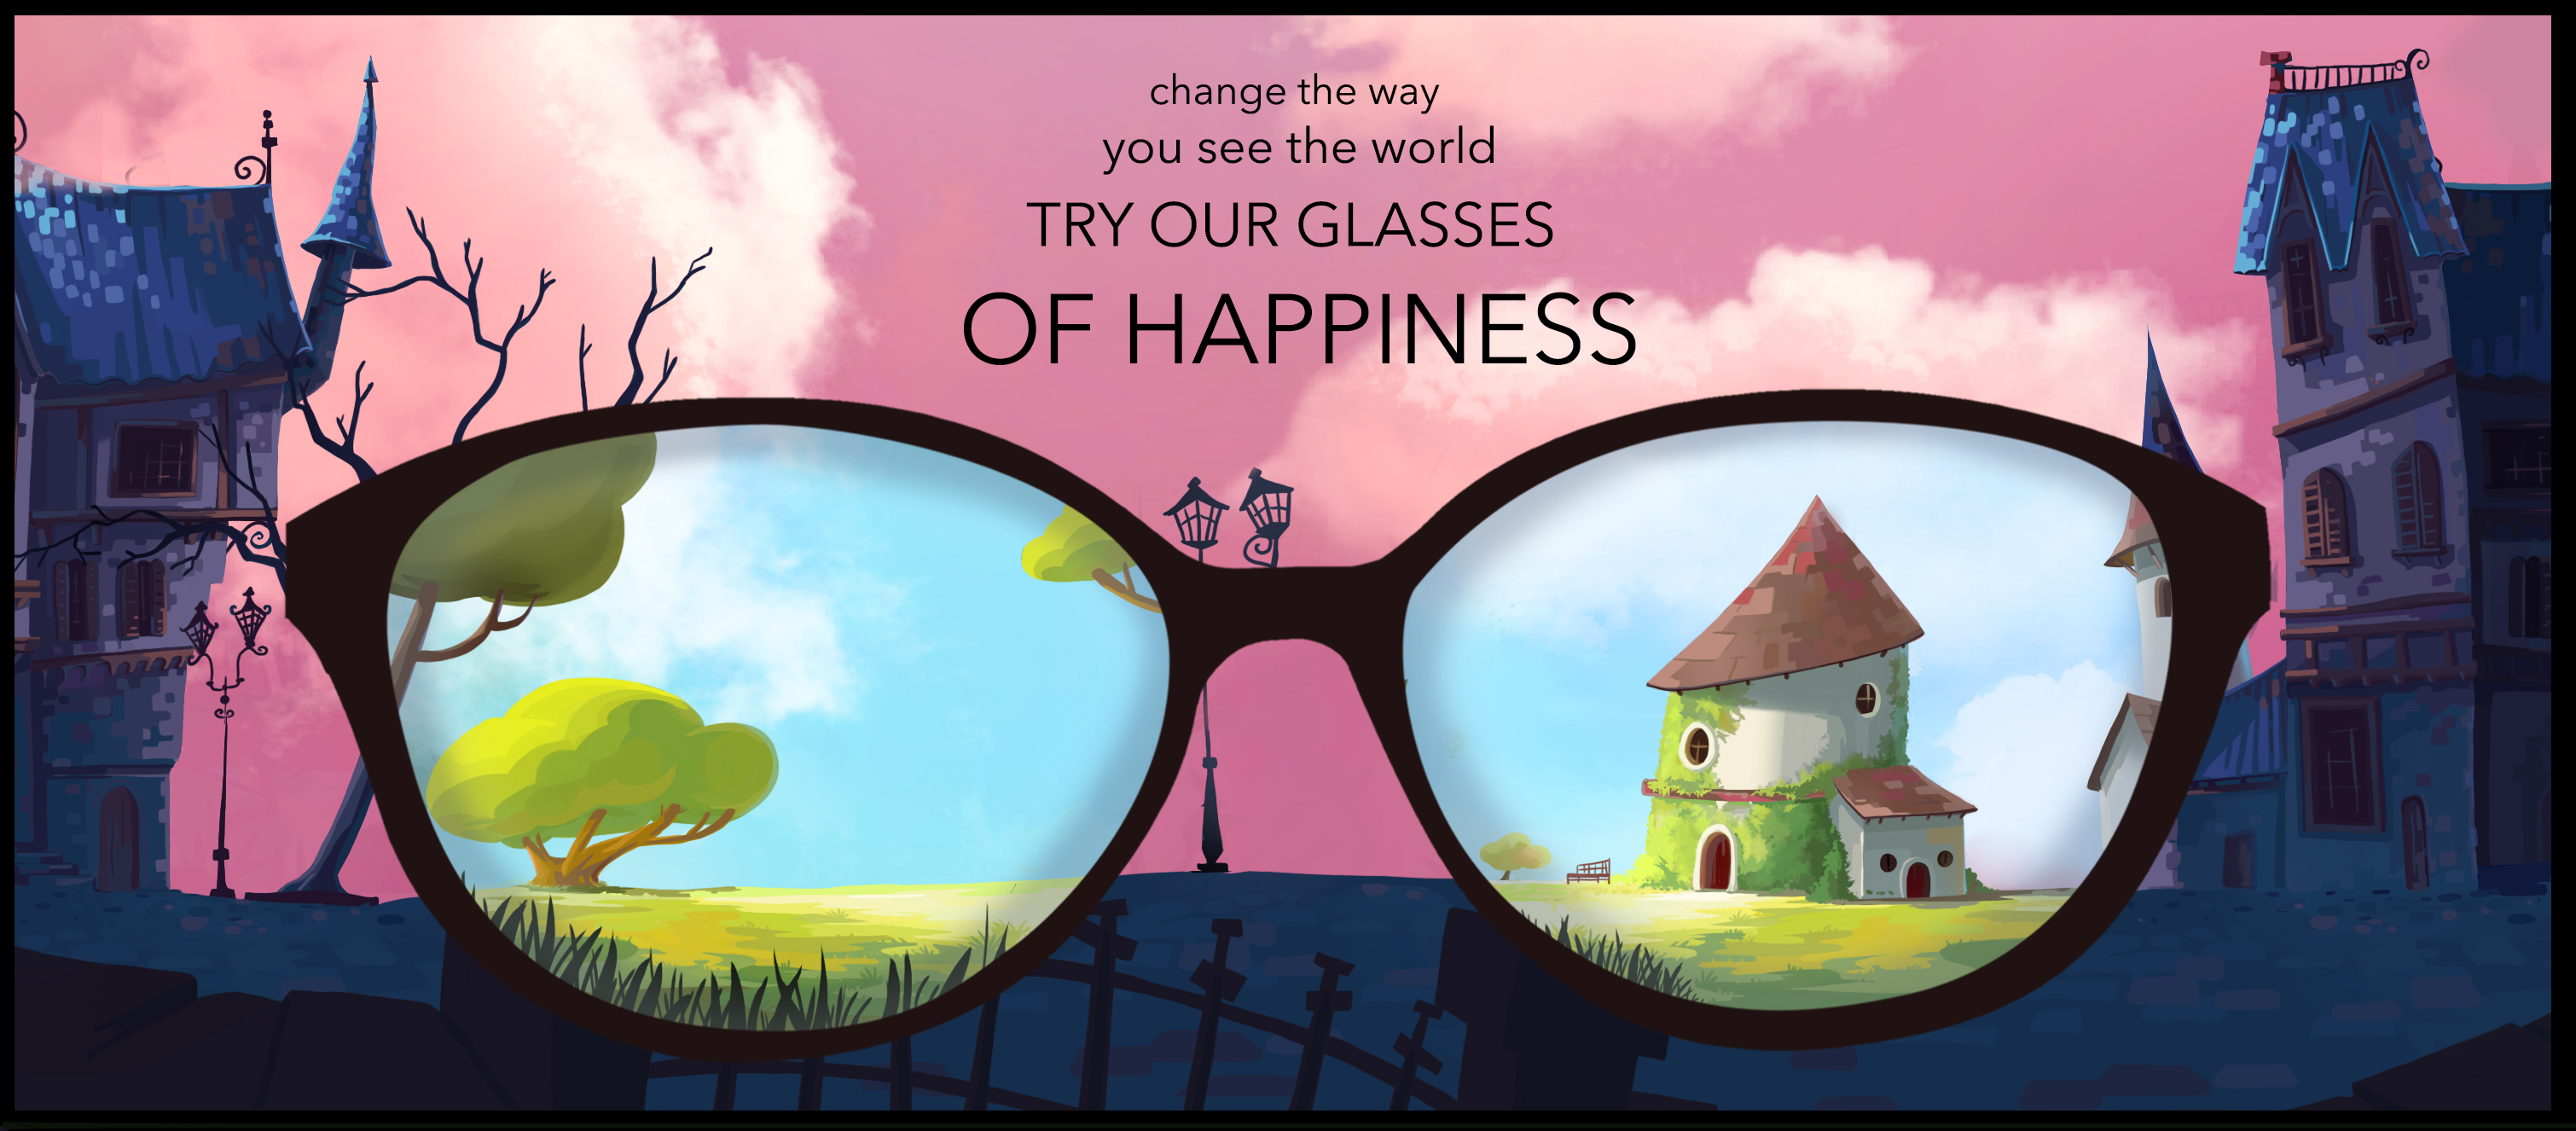 TRY OUR NEW GLASSES